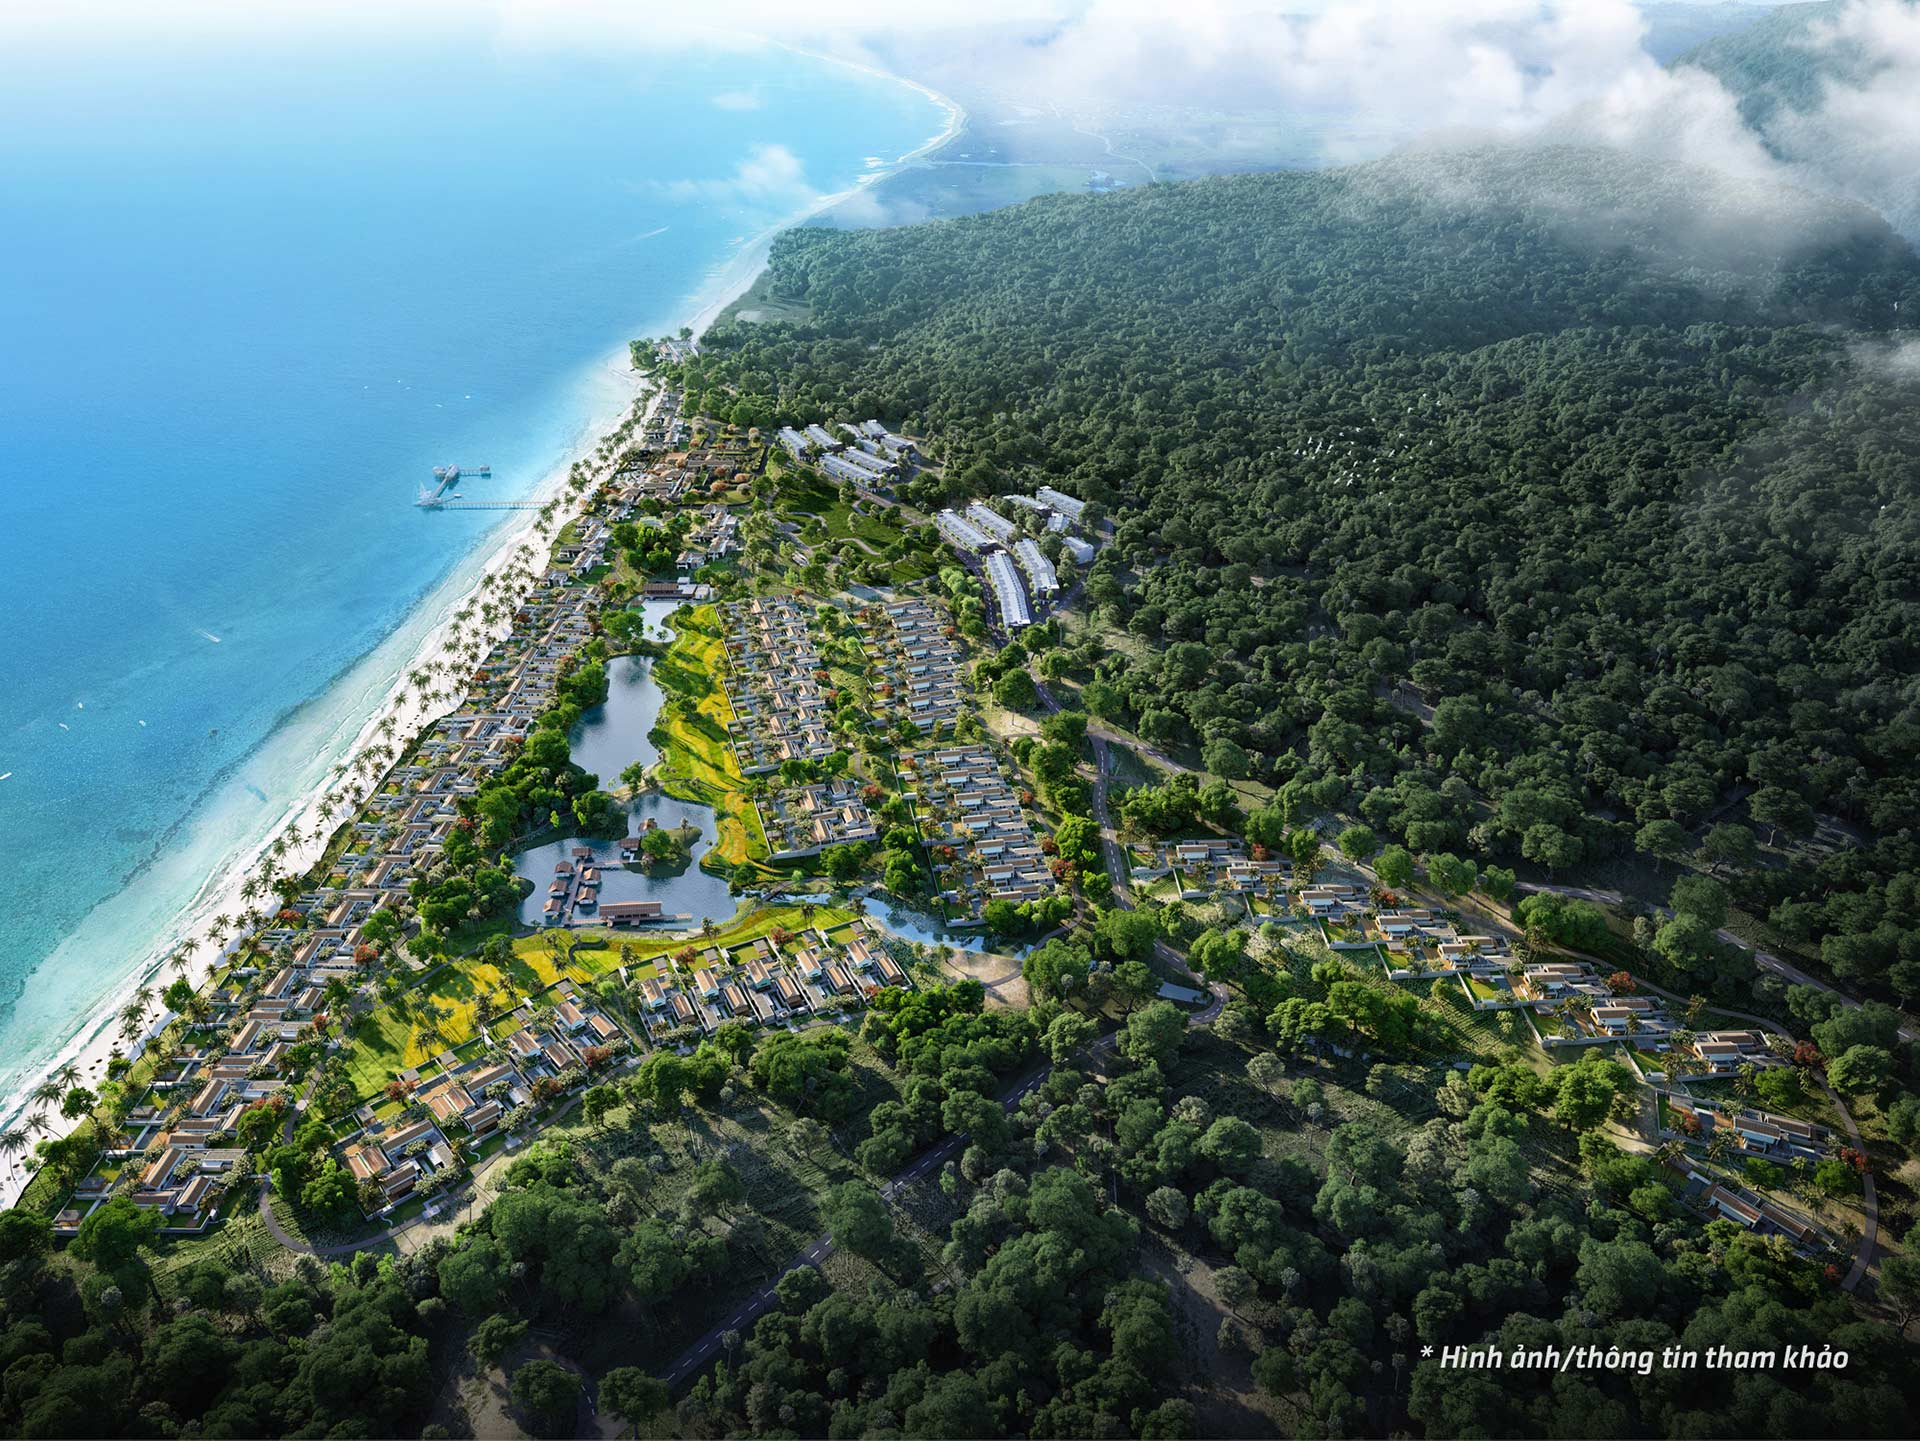 Park Hyatt Phu Quoc - Phoi canh tong the 1